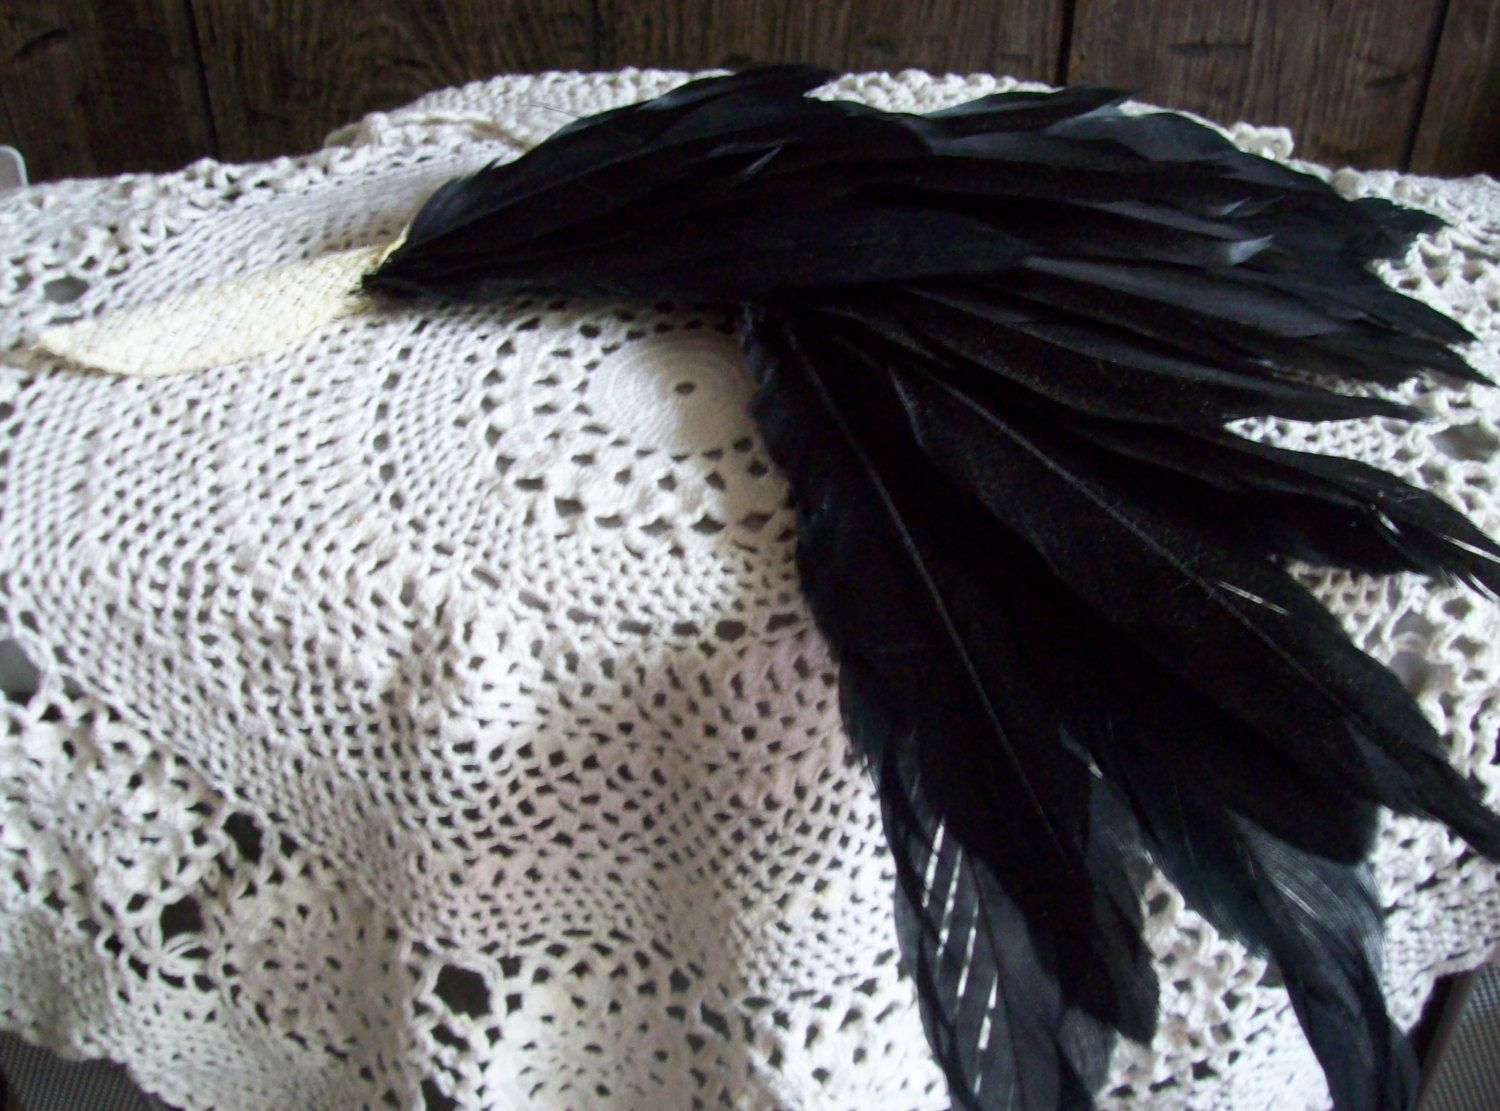 Large Vintage Feathers for Hat with Hat Pin Black Feathers by kd15 on Etsy